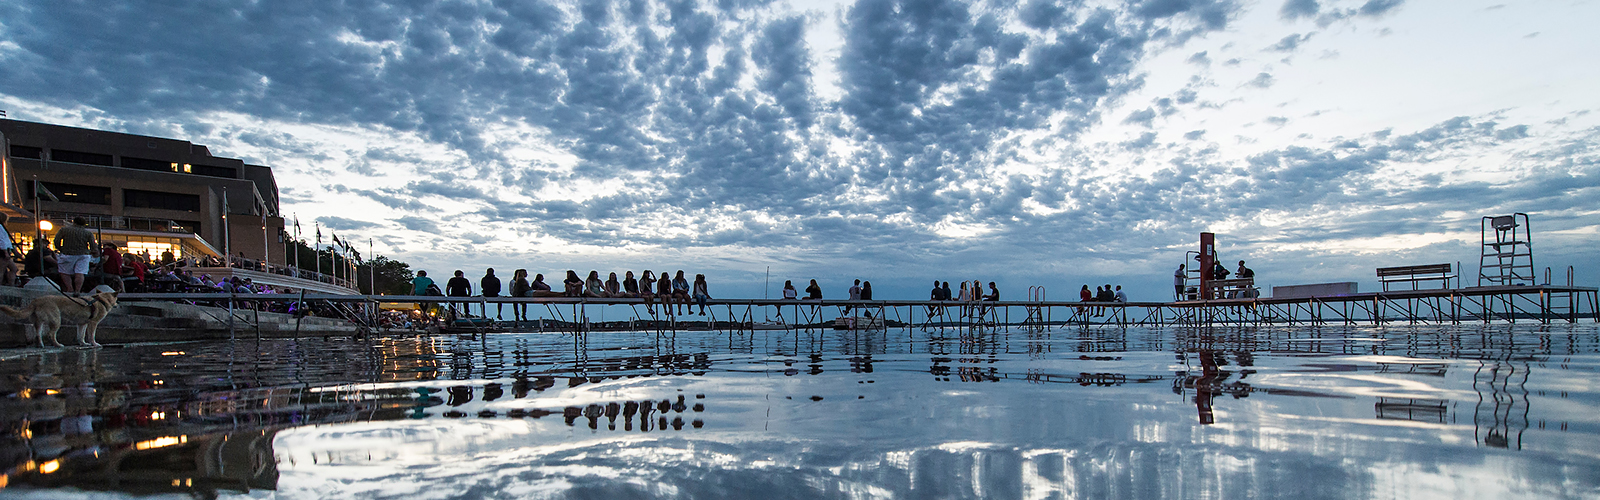 People line the Memorial Union Terrace and shoreline piers at the University of Wisconsin-Madison and take in the post-sunset view of Lake Mendota as the sky falls from dusk to nighttime during a summer evening on June 14, 2014. (Photo by Jeff Miller/UW-Madison)